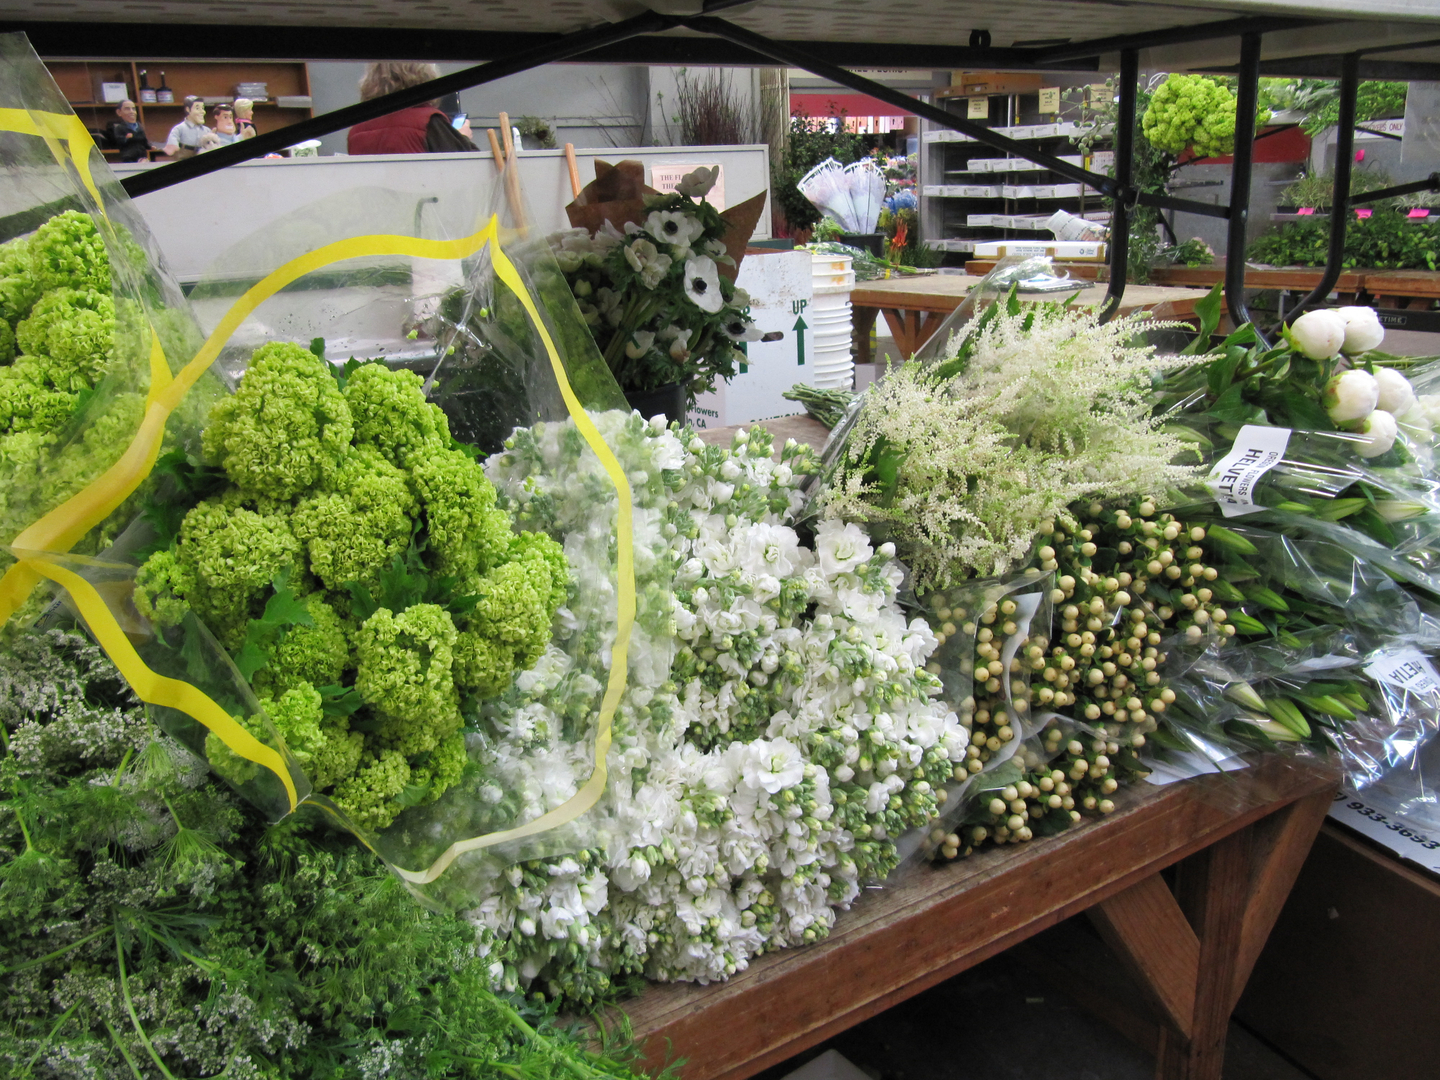 Faq frequently asked questions how is product priced at the san francisco flower izmirmasajfo